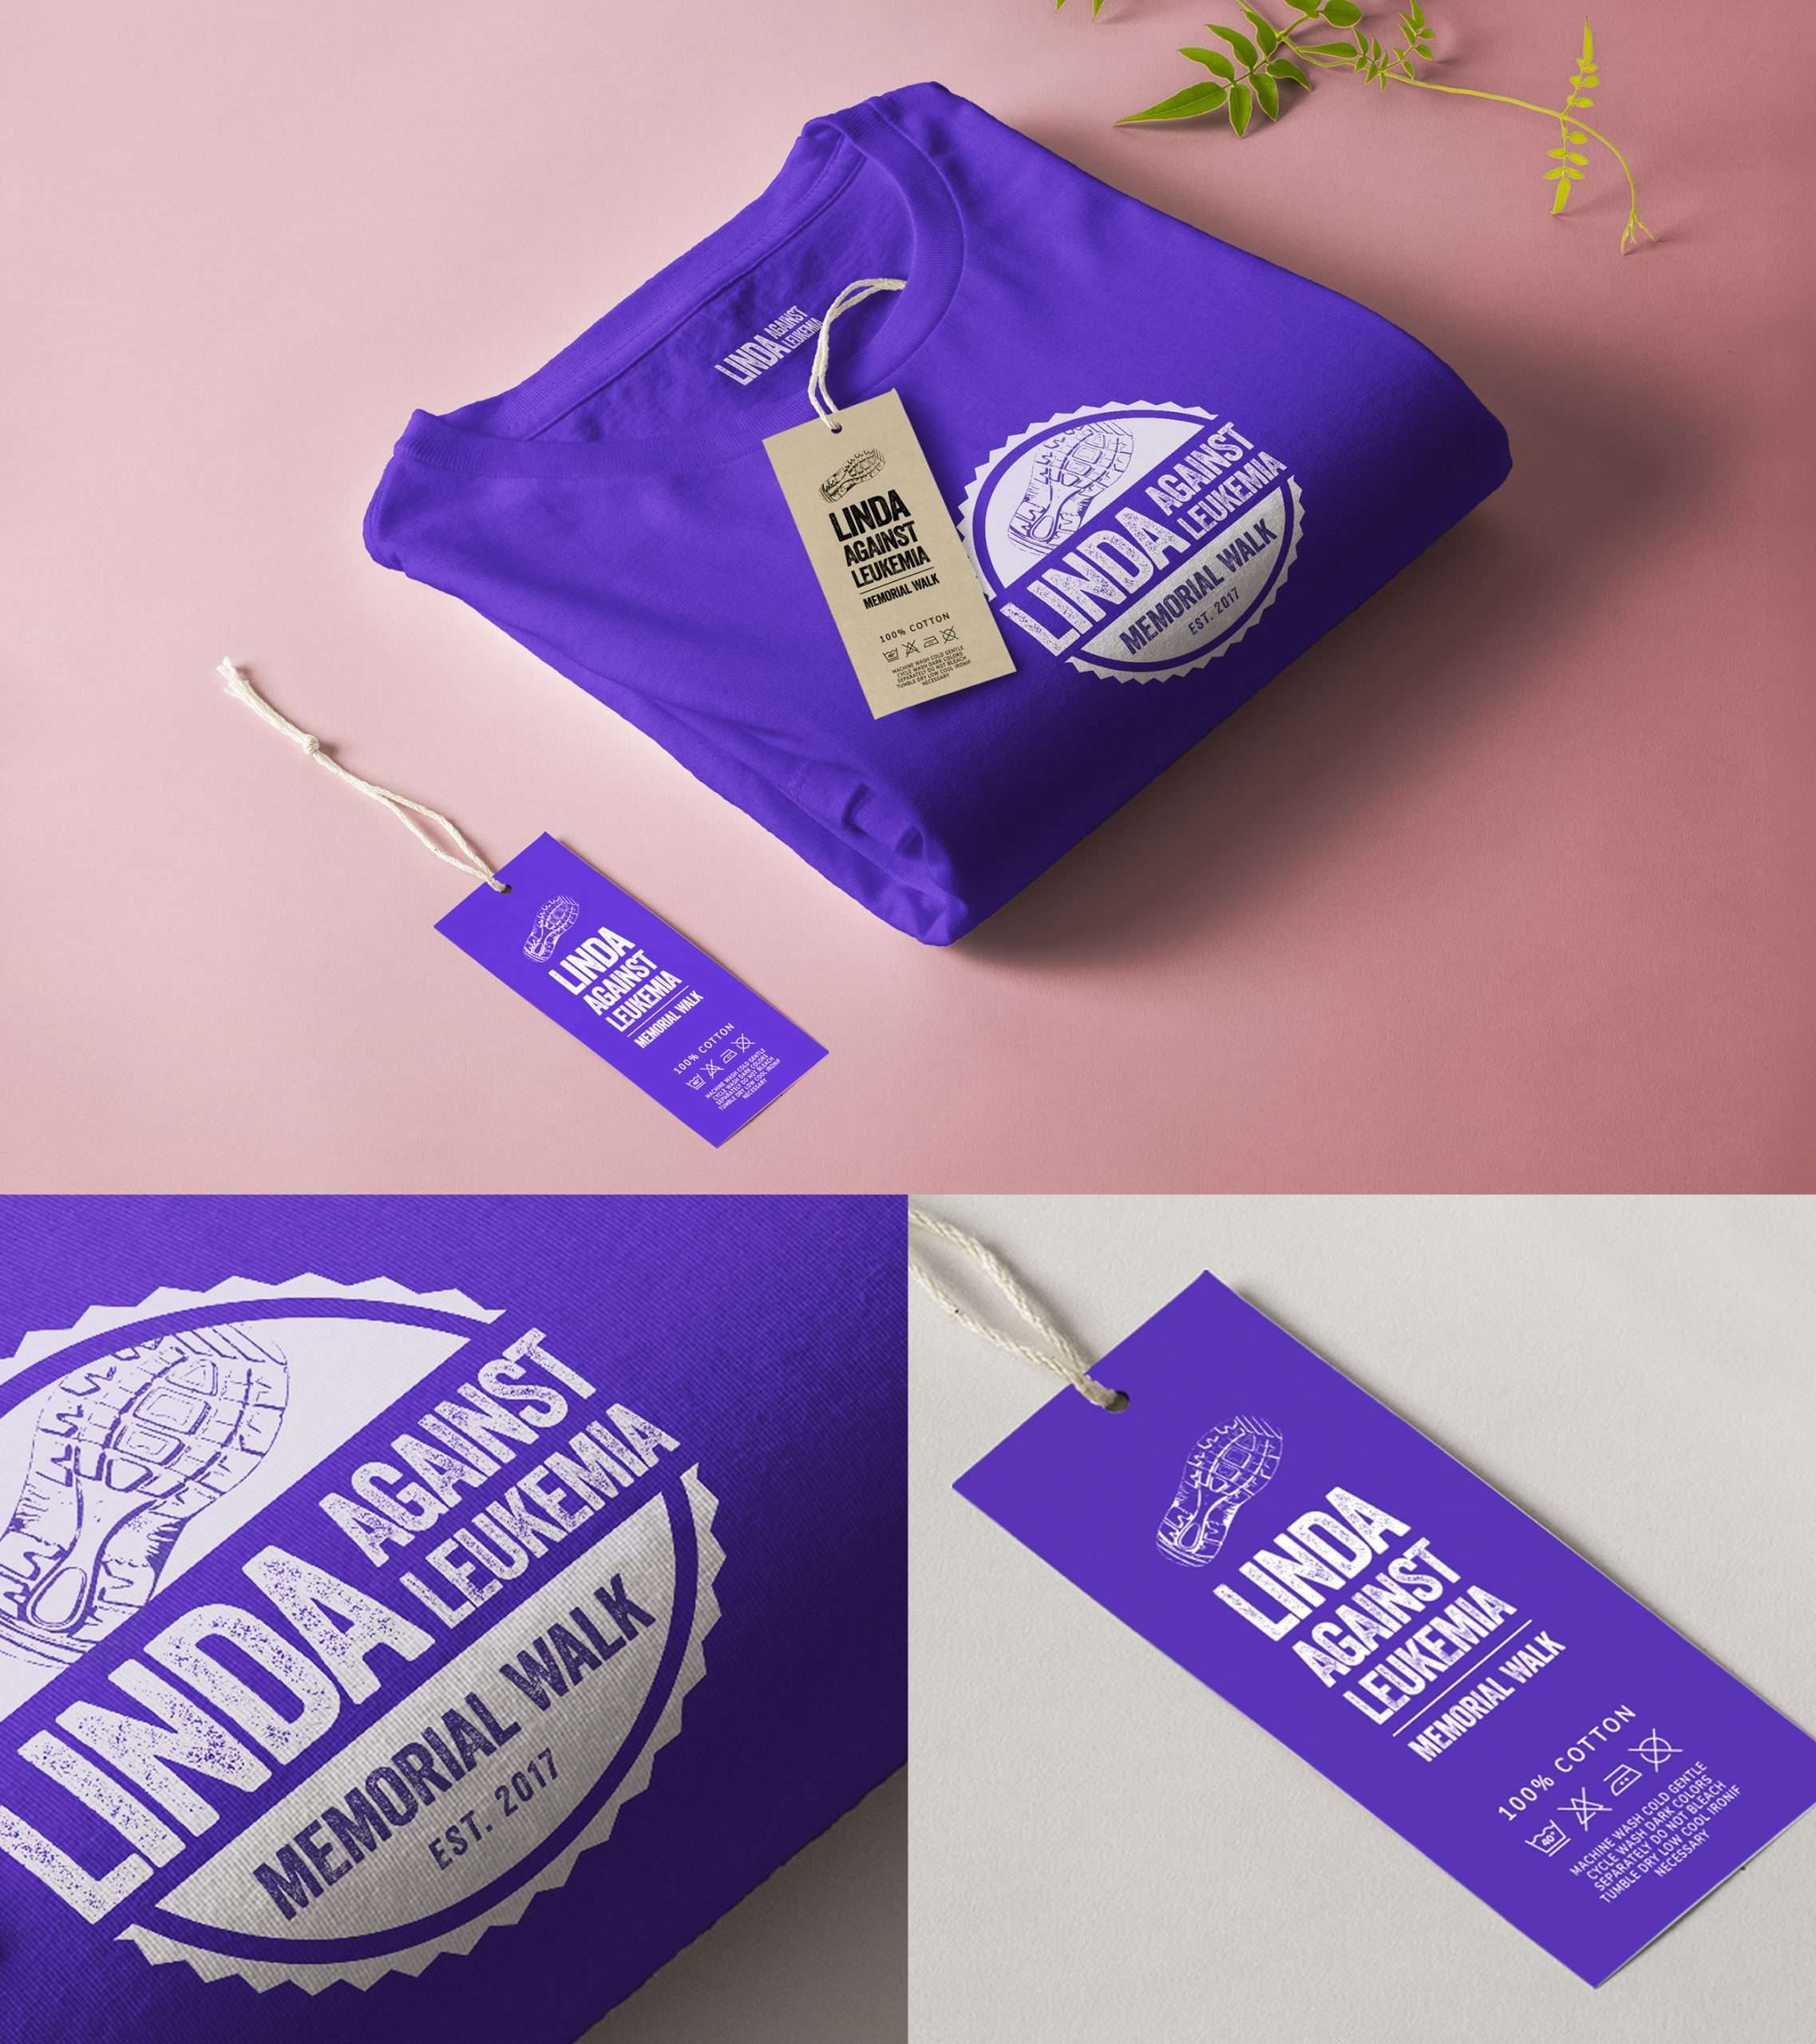 Purple screen-printed t-shirt mockup for a non-profit organization, including tag design.